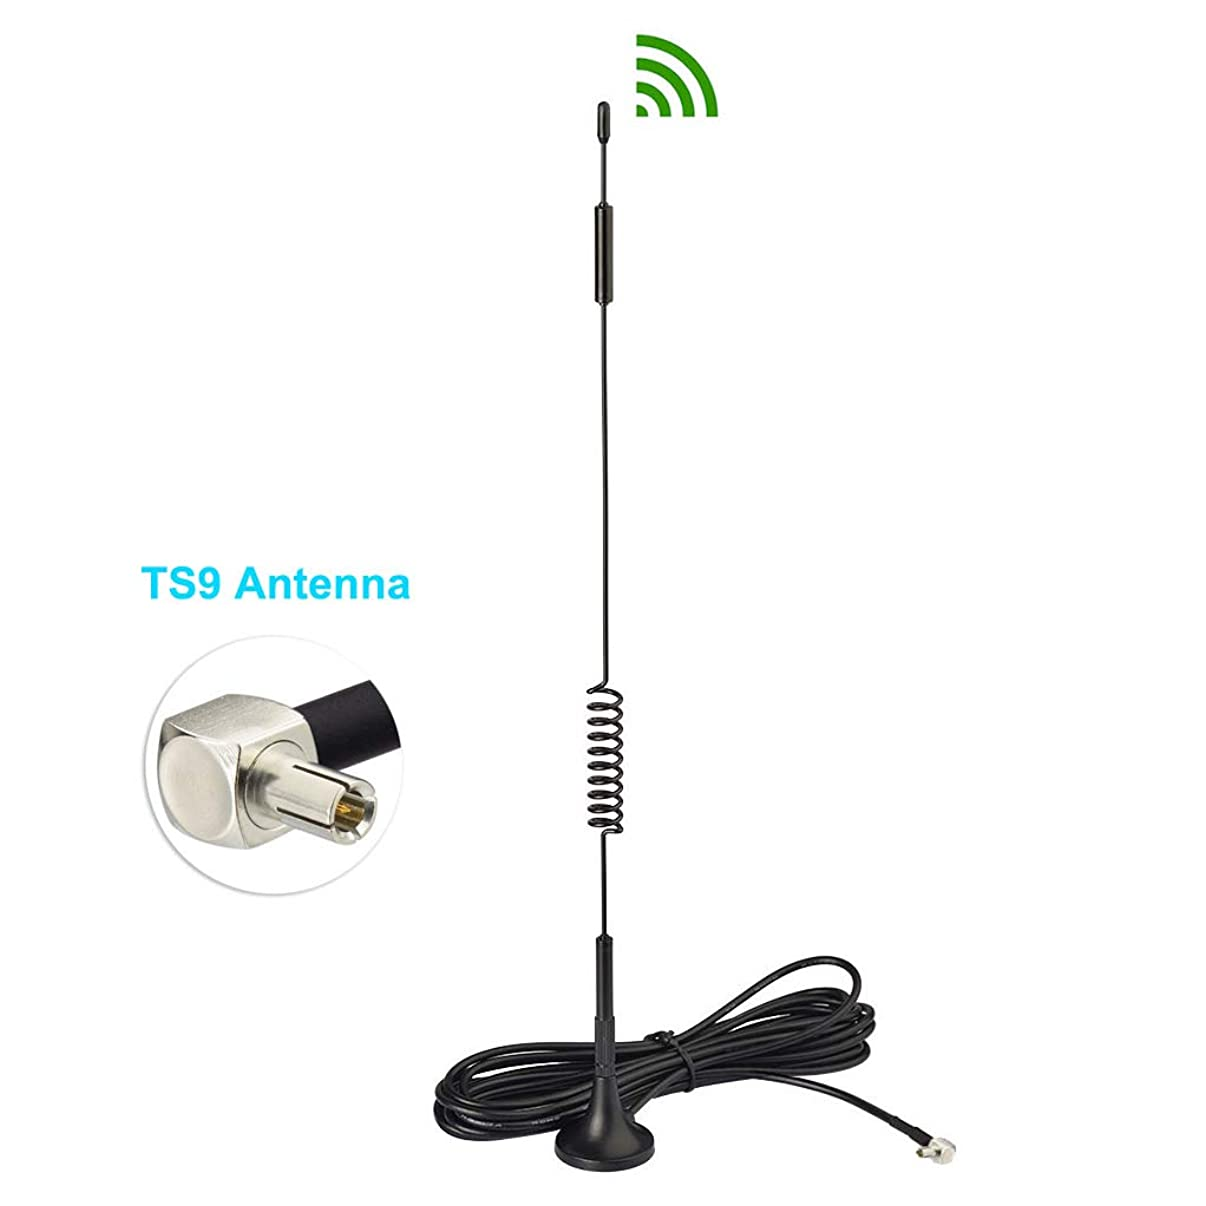 Bingfu 4G LTE 7dBi Magnetic Base TS9 Antenna Compatible with Verizon AT&T T-Mobile Sprint Netgear Huawei MiFi Mobile Hotspot Router USB Modem Jetpack AirCard AC791L 6620L AC815S AC770S AC781S MR1100